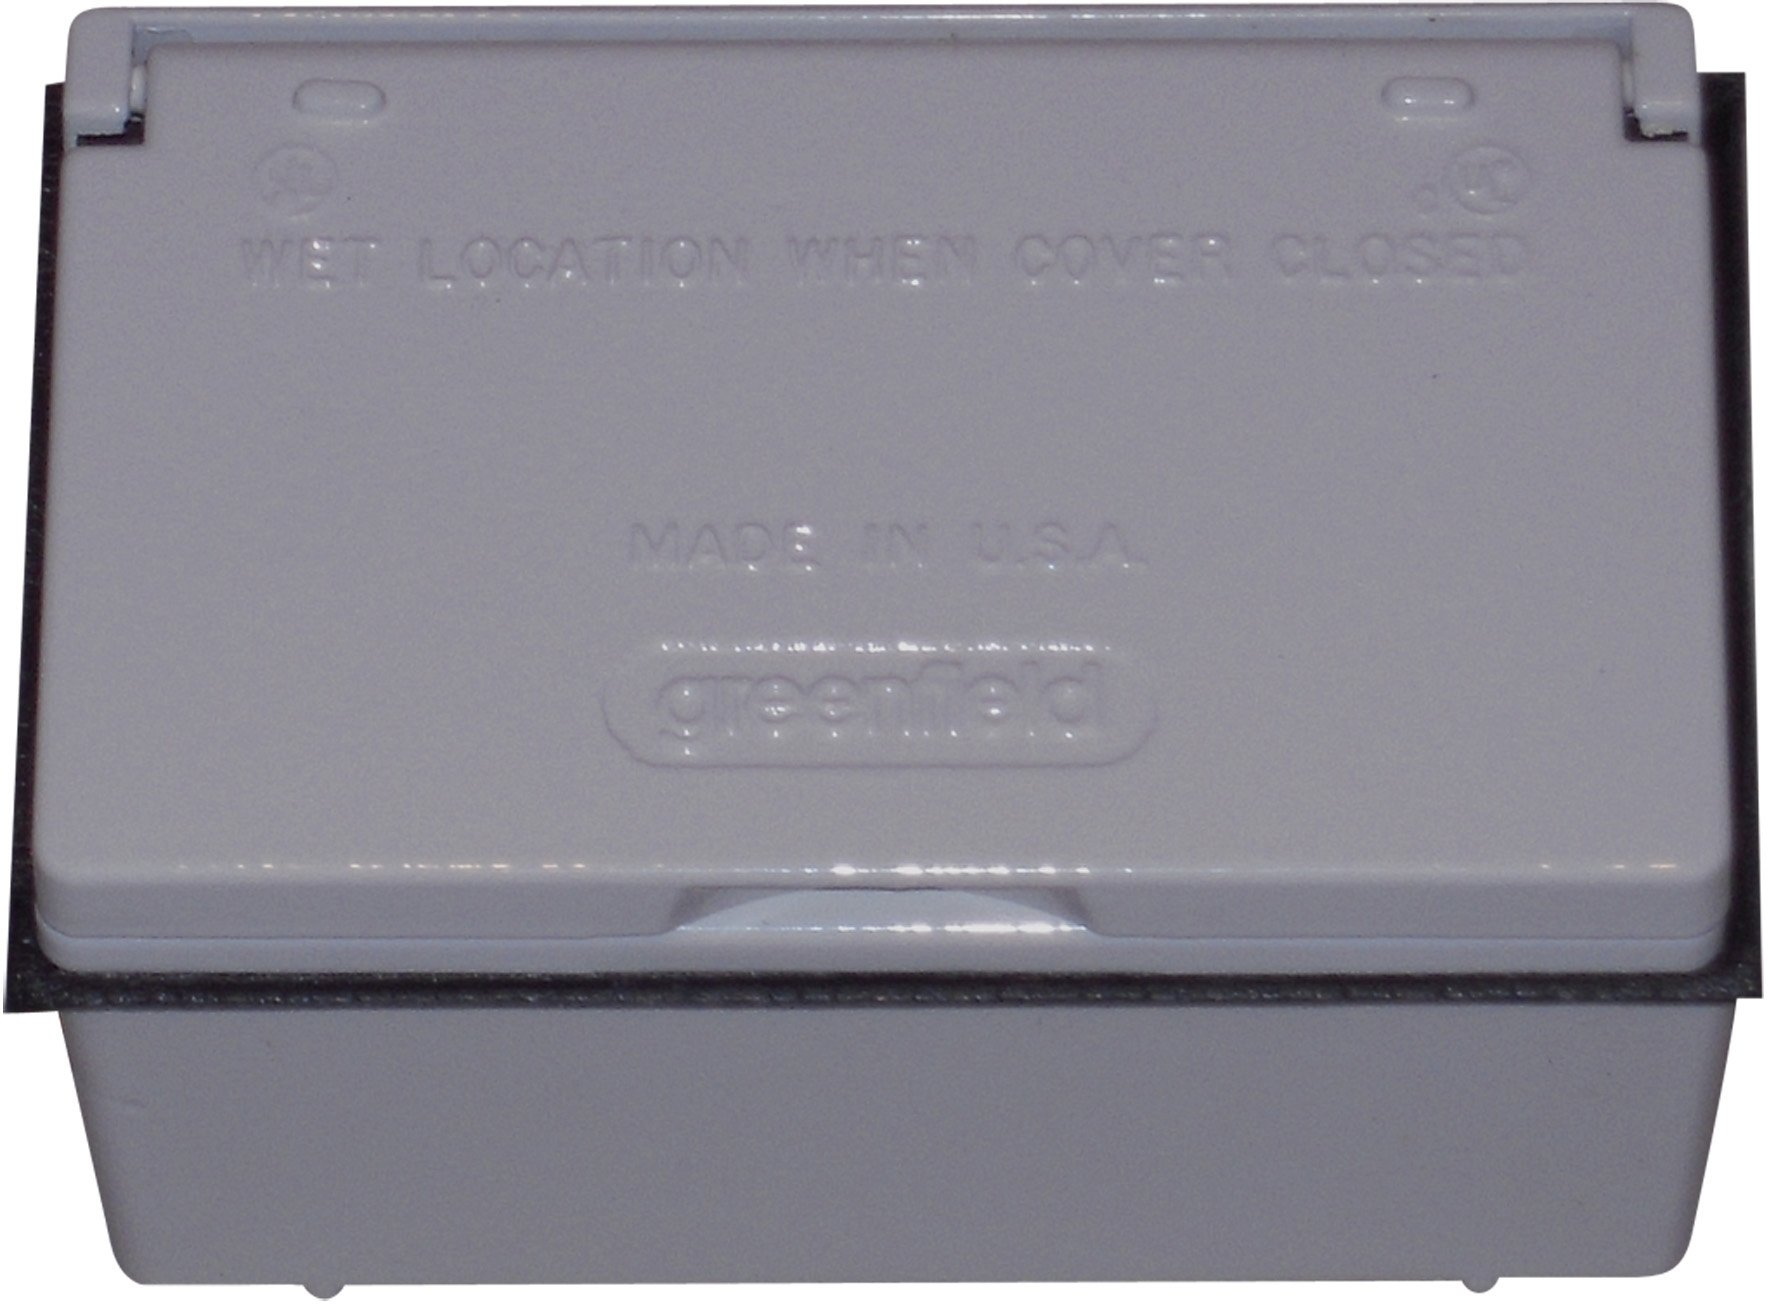 Made in USA Weatherproof Electrical Outlet Box, Box Cover & GFCI Outlet Kit Gray